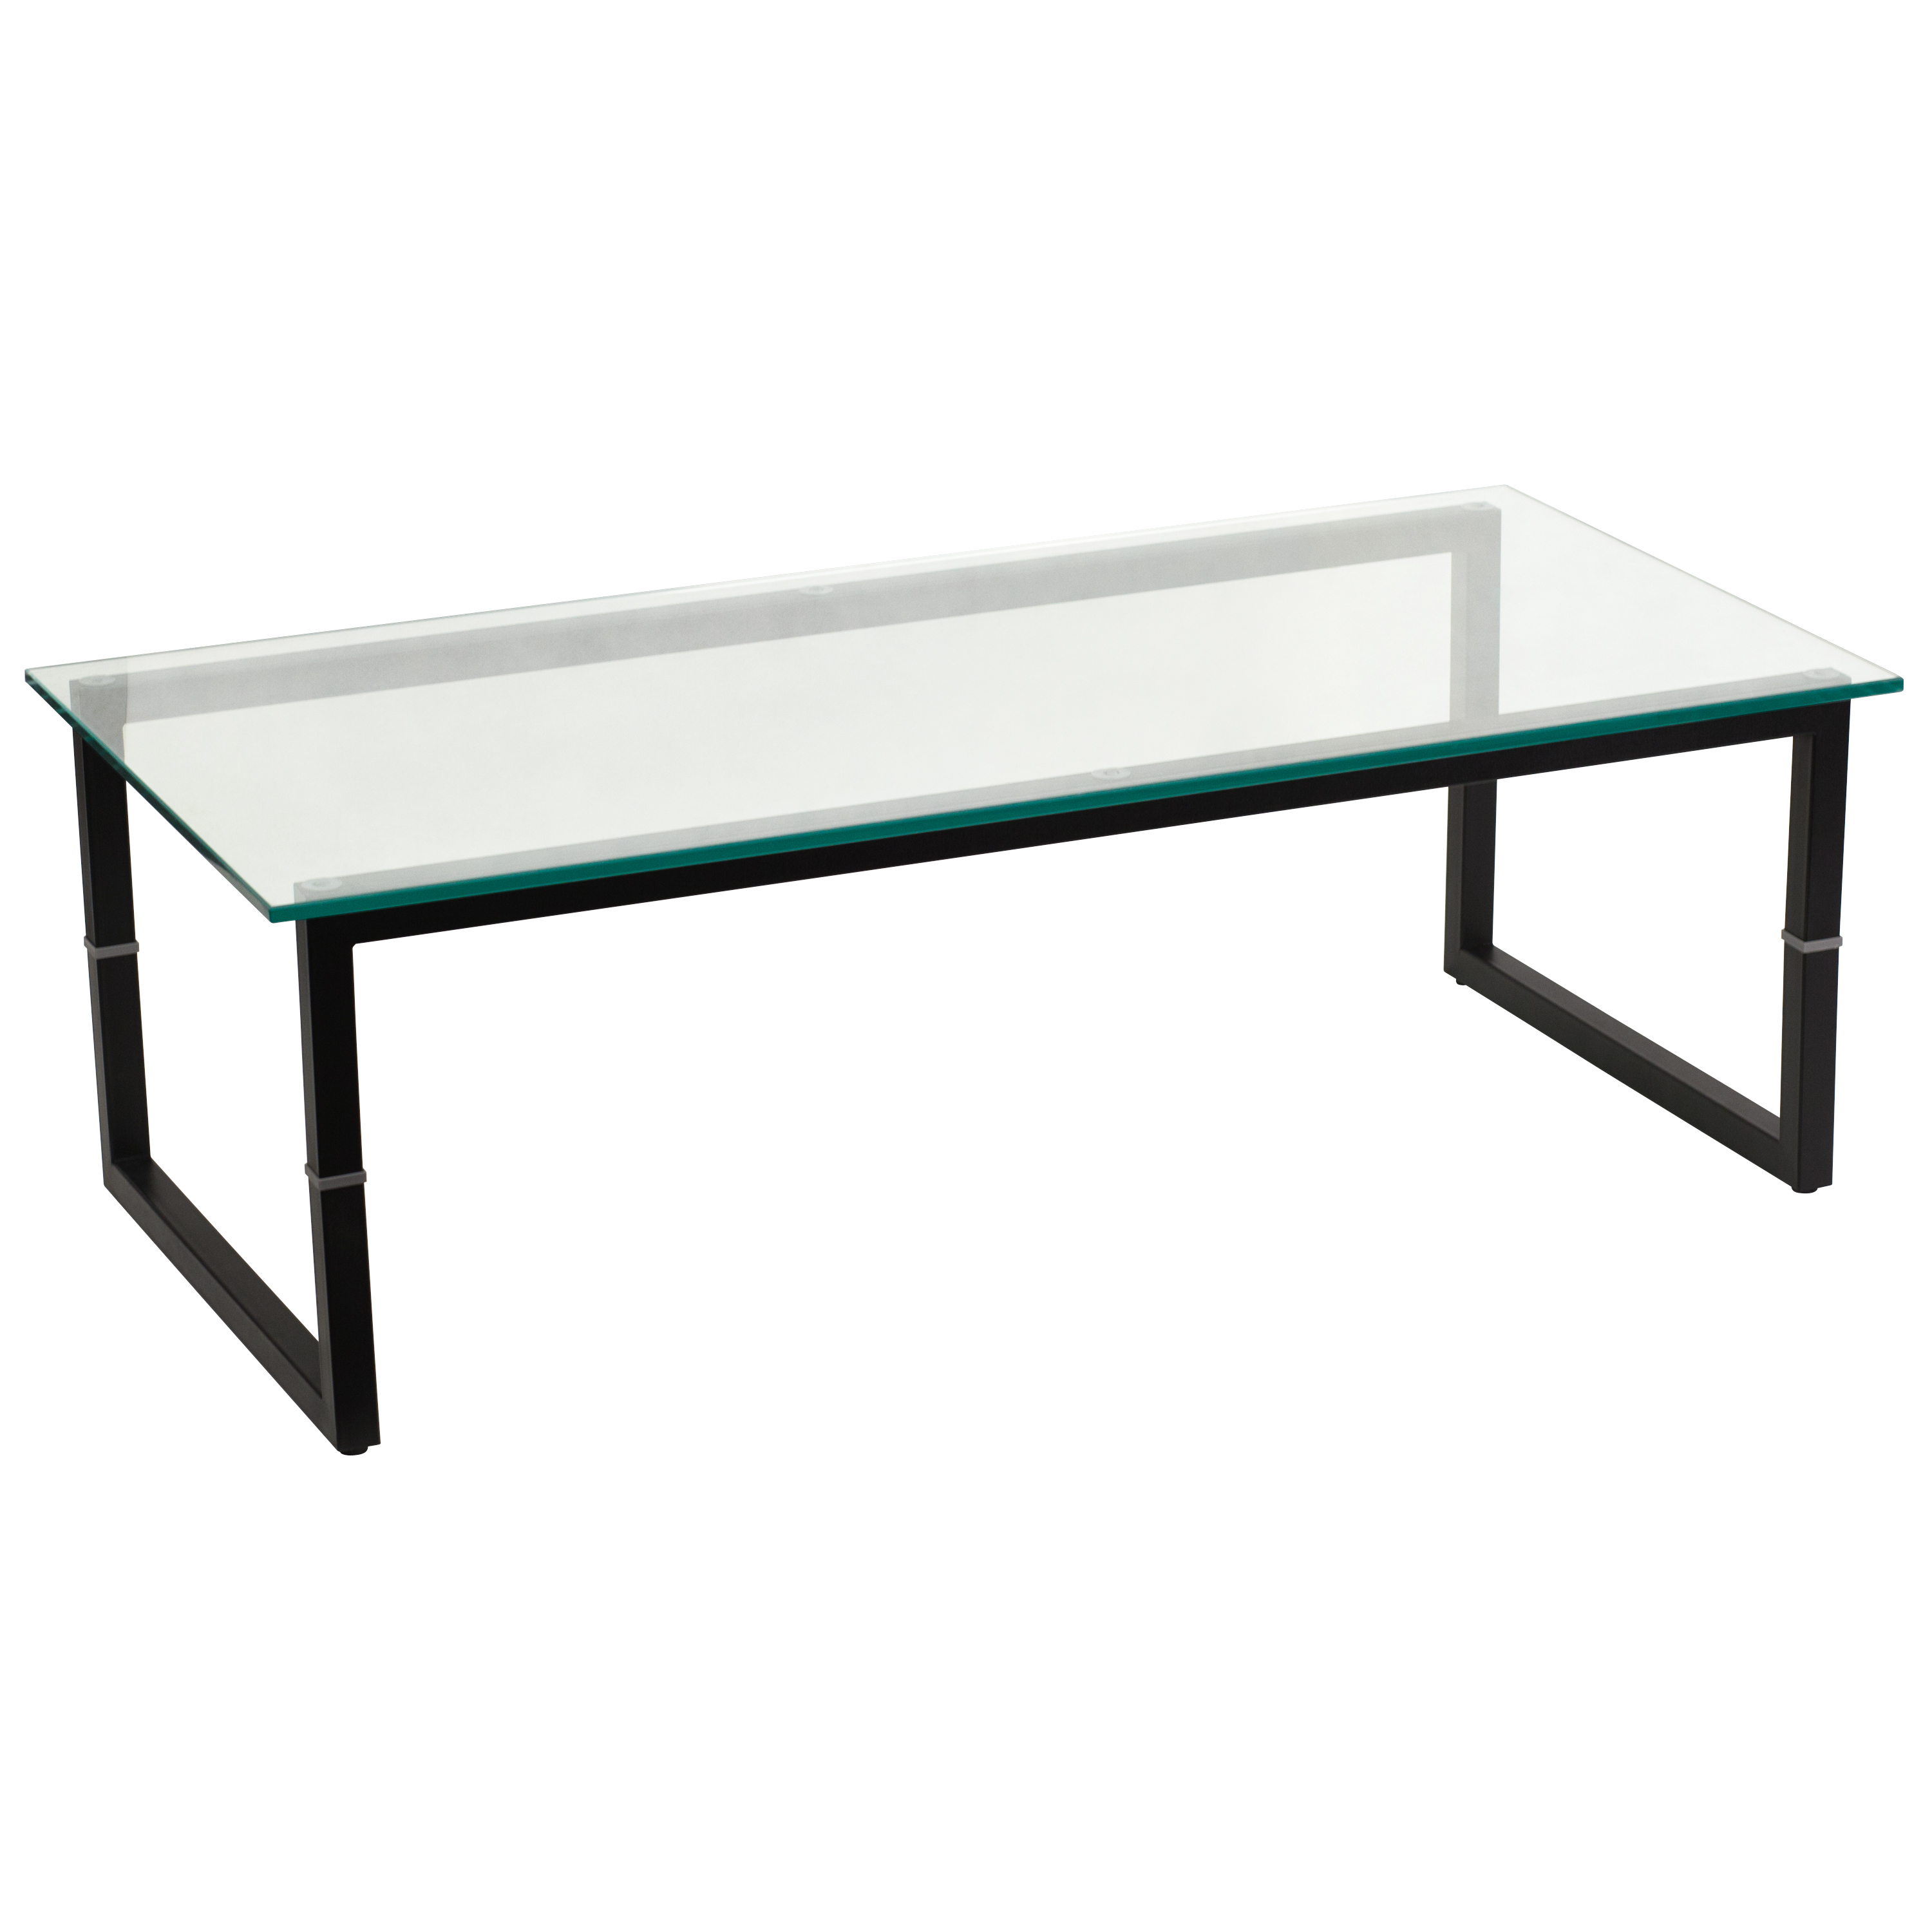 Welcome new post has been published on Glass coffee table tops